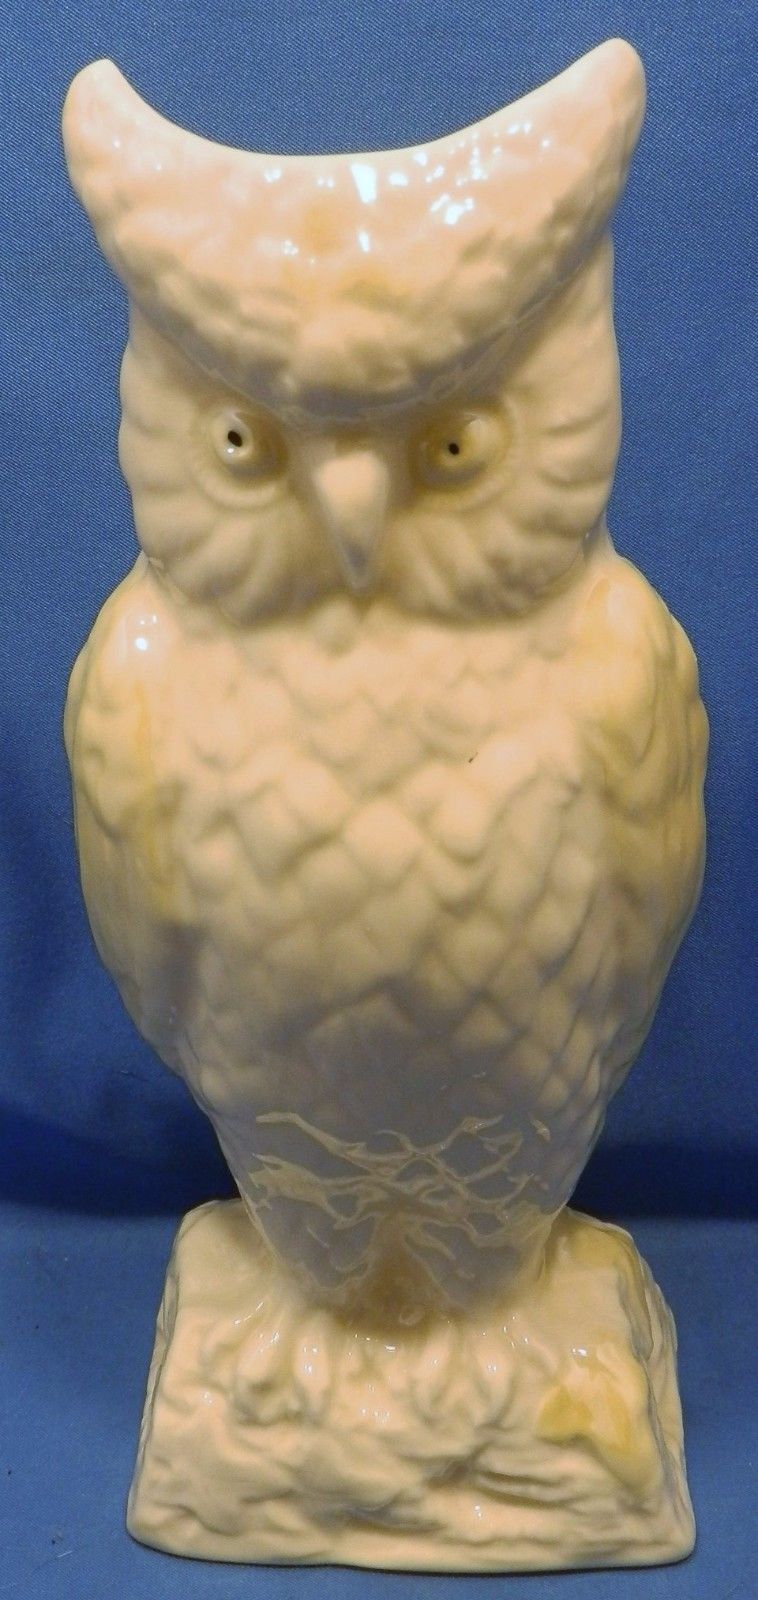 Belleek Ireland Vase Value Of Belleek Porcelain Owl by Hathawaycandc On Etsy Belleek Of Ireland for Belleek Porcelain Owl by Hathawaycandc On Etsy Belleek Of Ireland Pinterest Porcelain